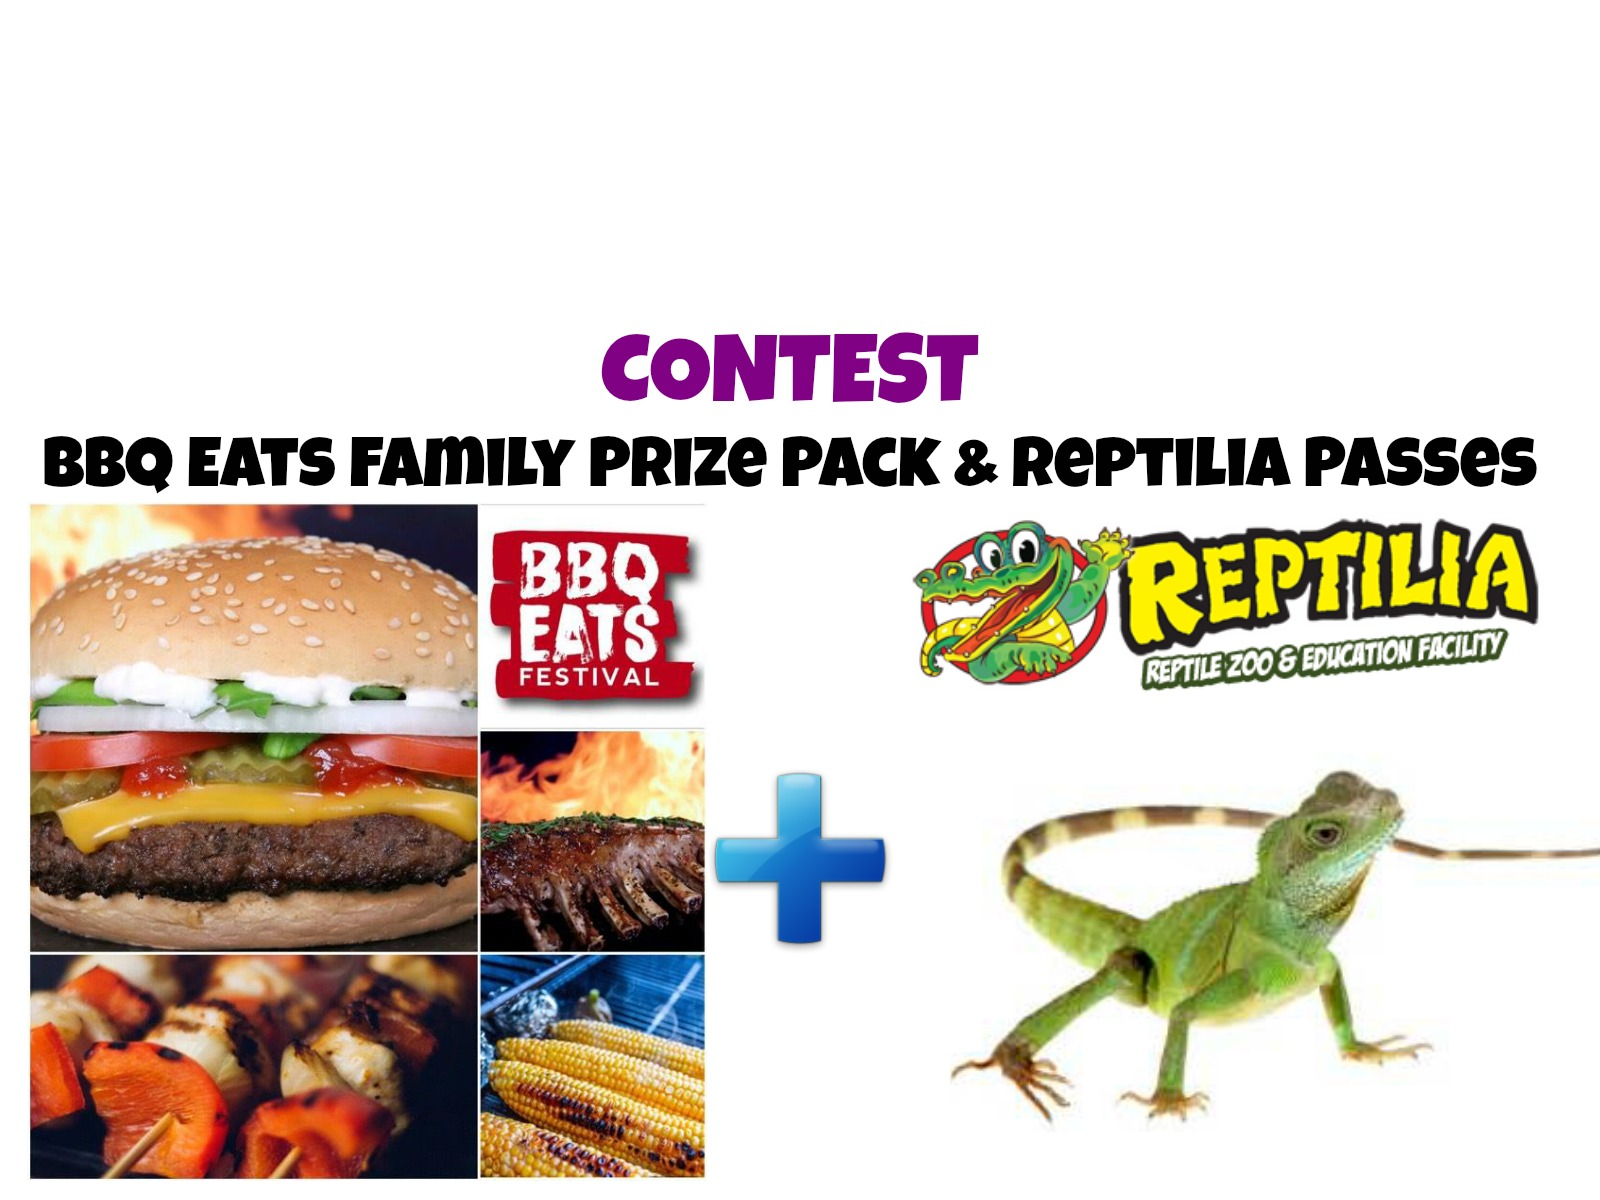 CONTEST: BBQ Eats Family Prize Pack & Reptilia Passes